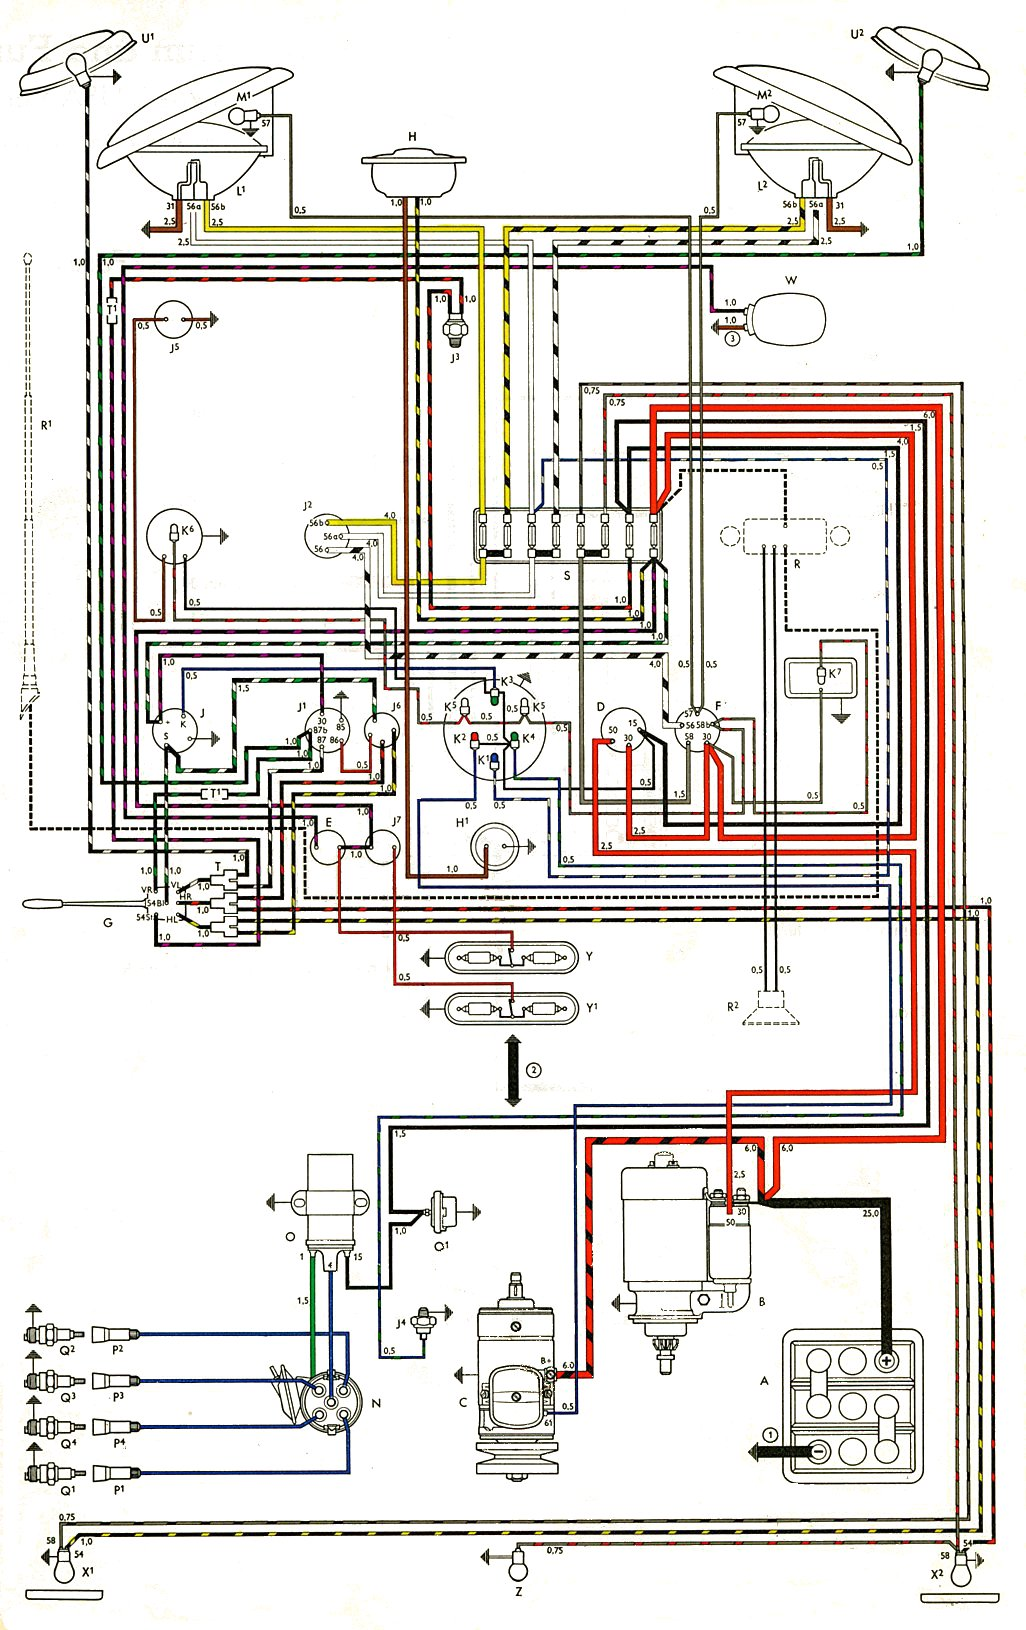 bus_63_USA thesamba com type 2 wiring diagrams Basic Electrical Wiring Diagrams at bayanpartner.co